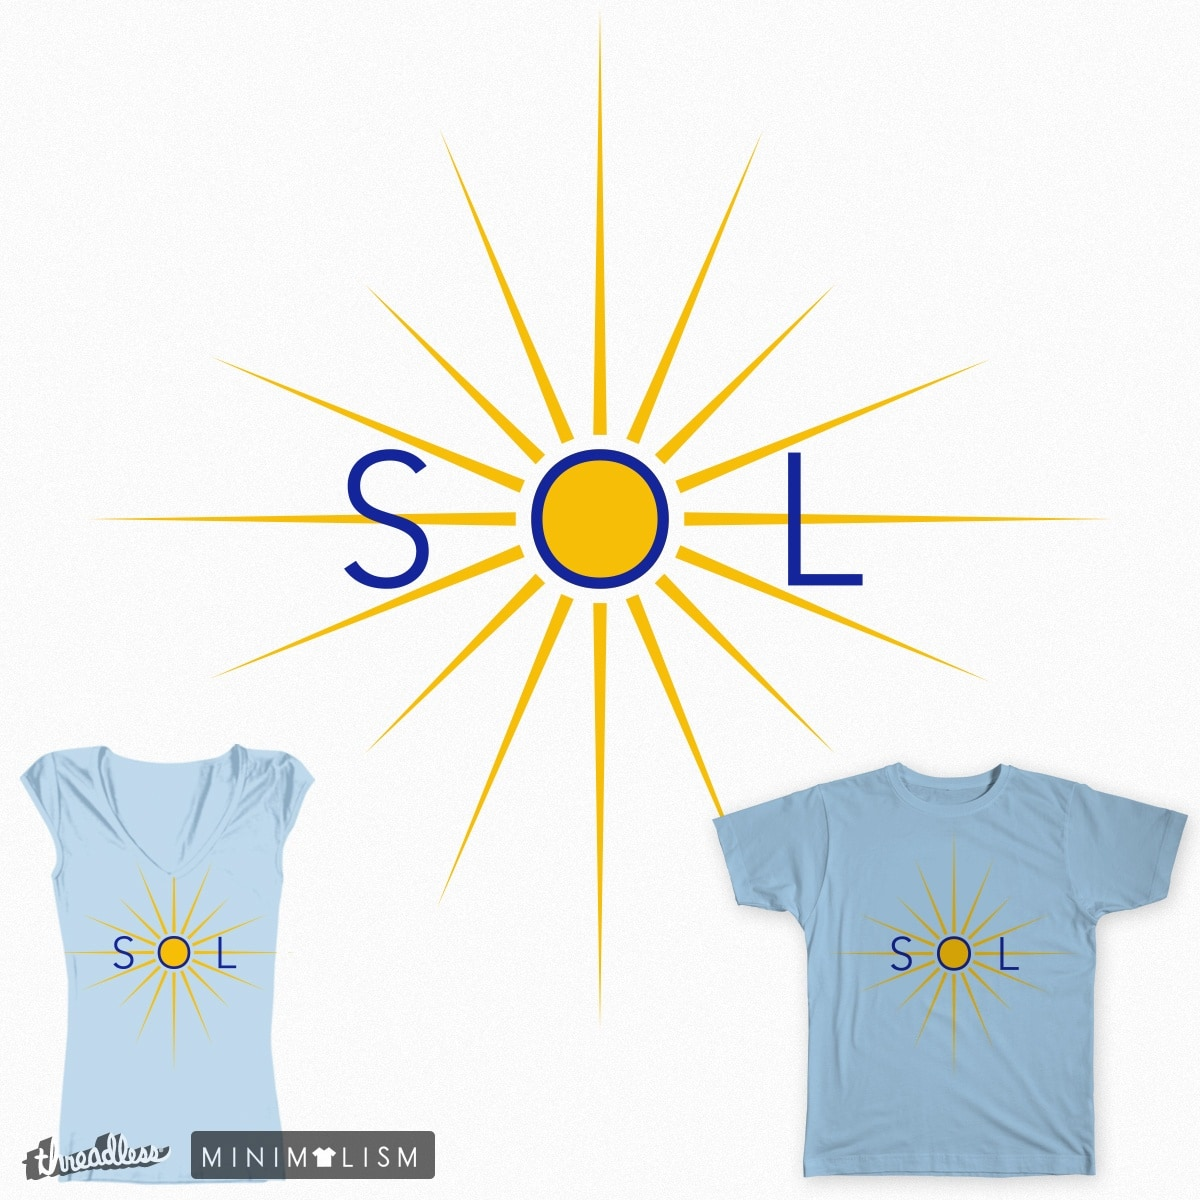 SOL by elysian_visions on Threadless